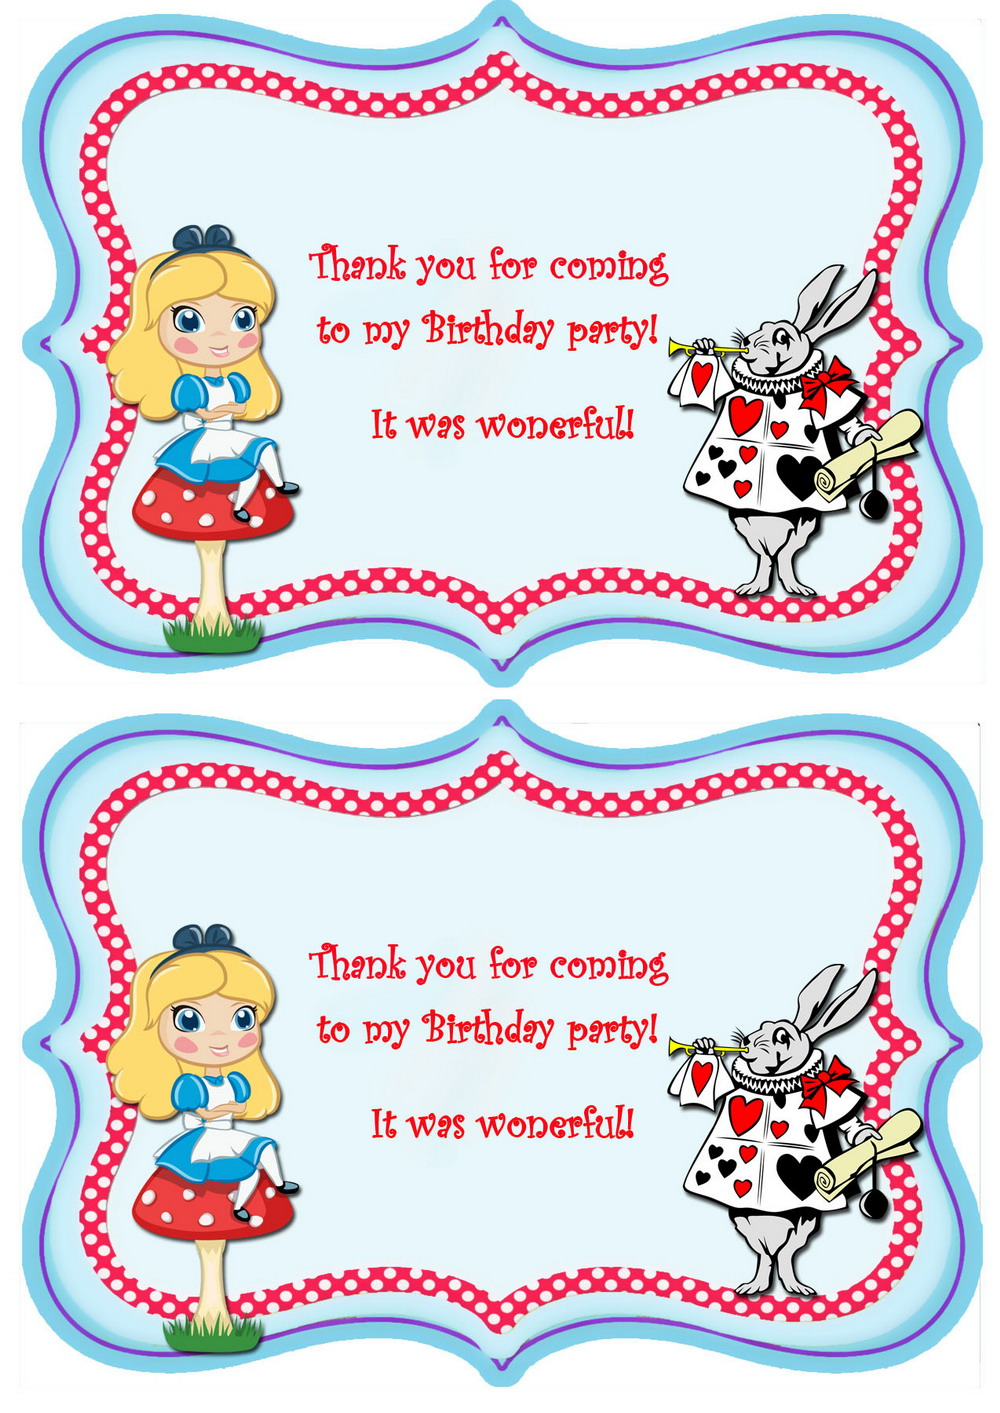 Alice in wonderland thank you cards birthday printable alice thankyou cards2 st pronofoot35fo Gallery